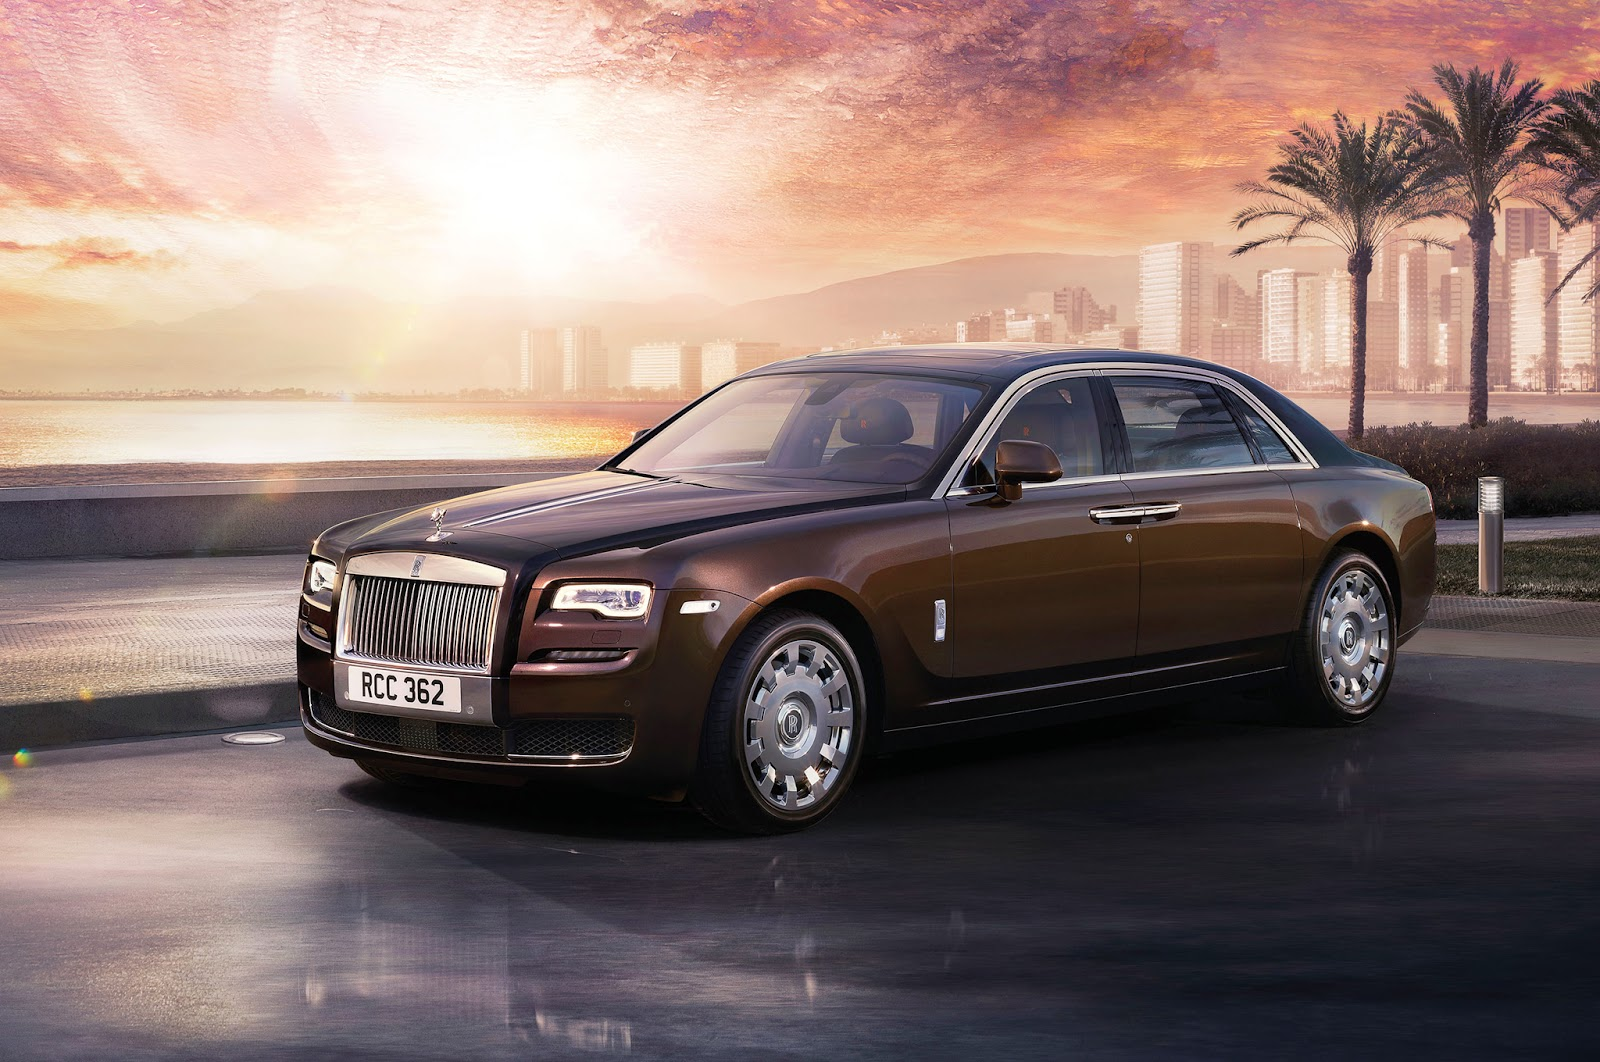 2015 Rolls-Royce Ghost Series beach Wallpaper